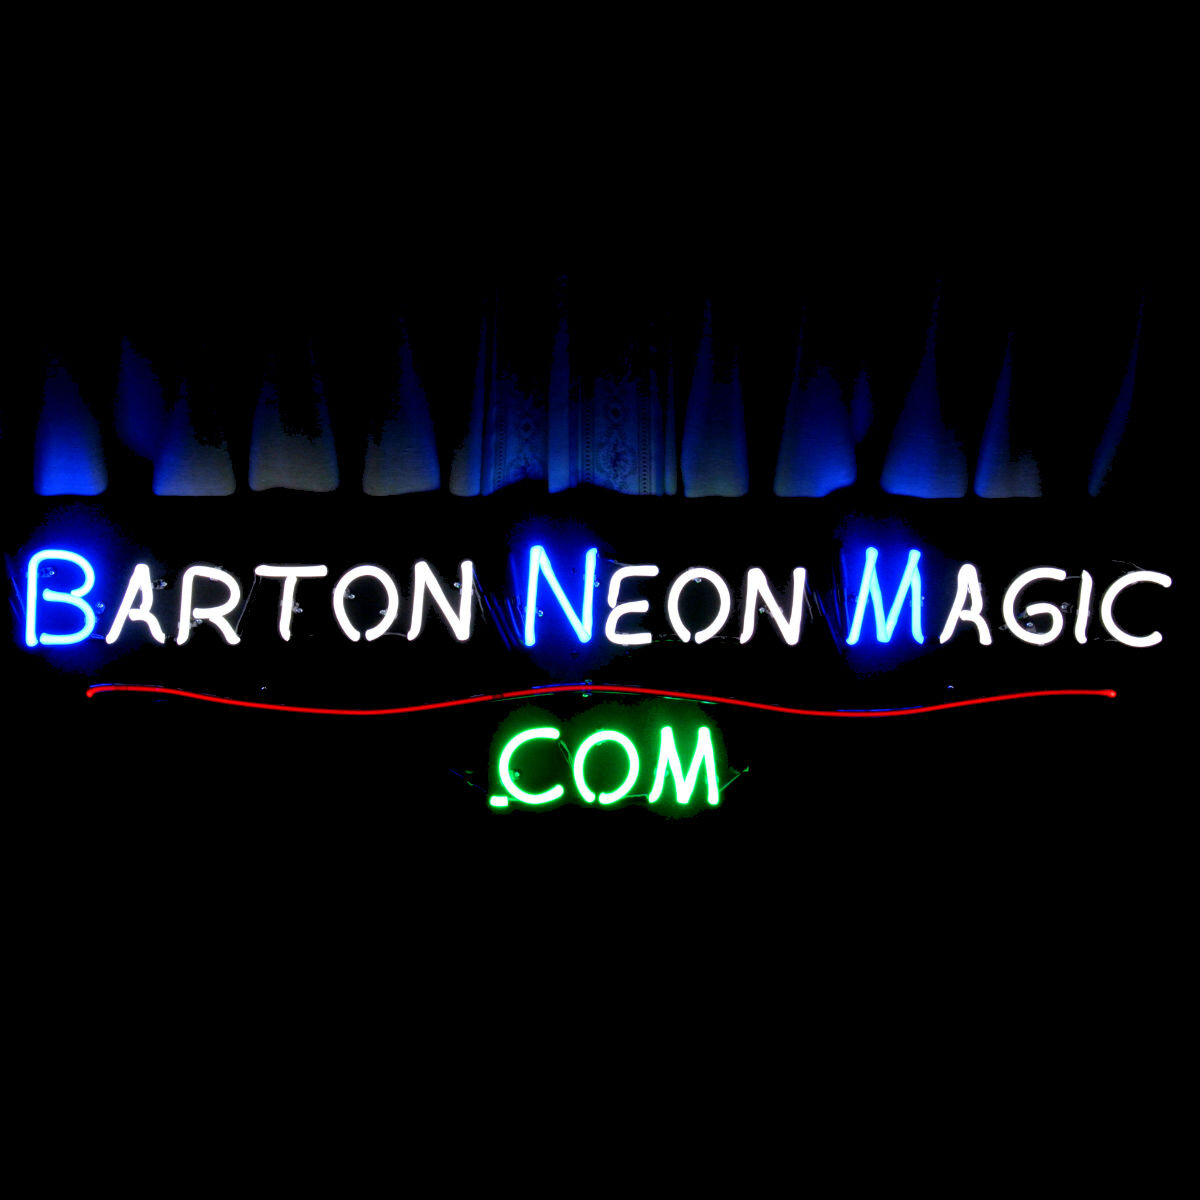 CUSTOM NEON LIGHT ART by John Barton - BartonNeonMagic.com